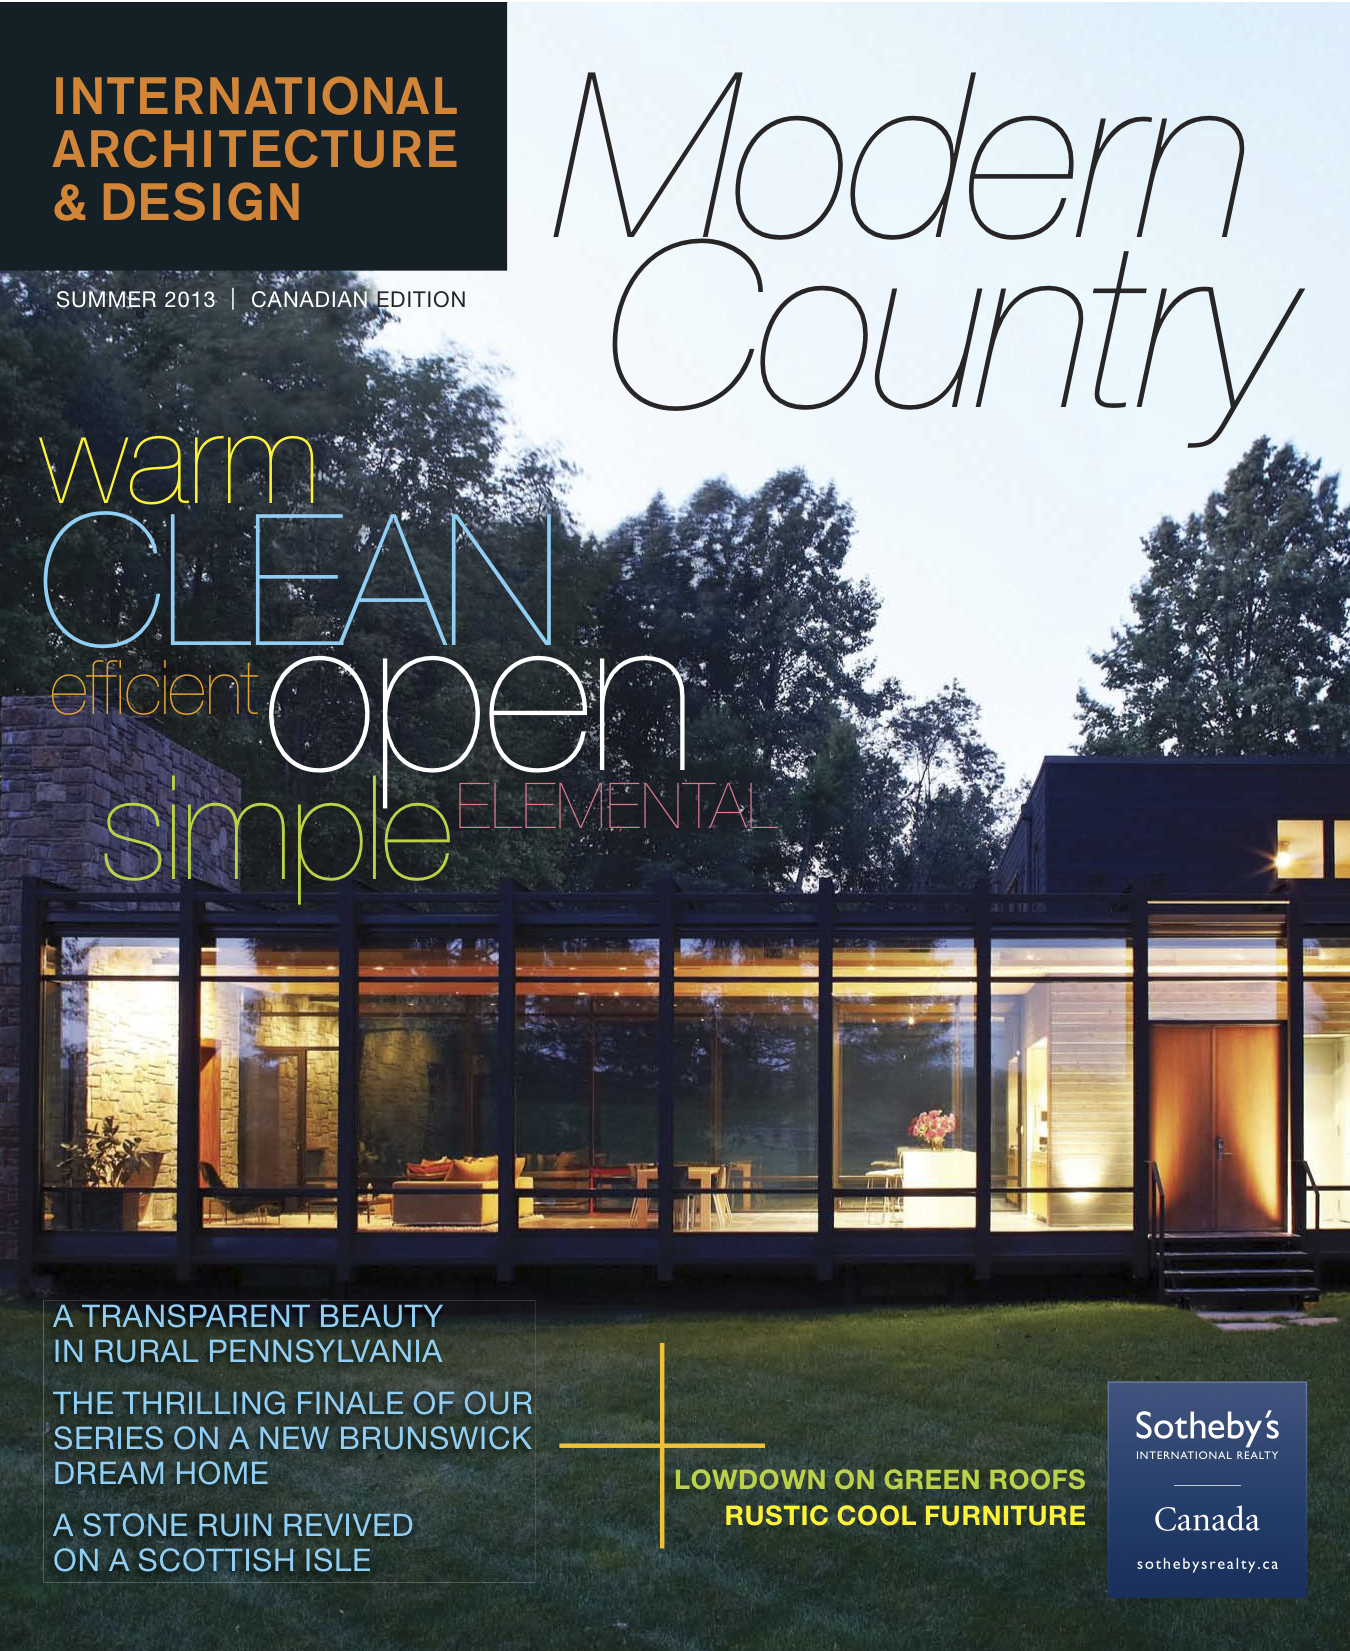 modern architecture featured in international architecture design